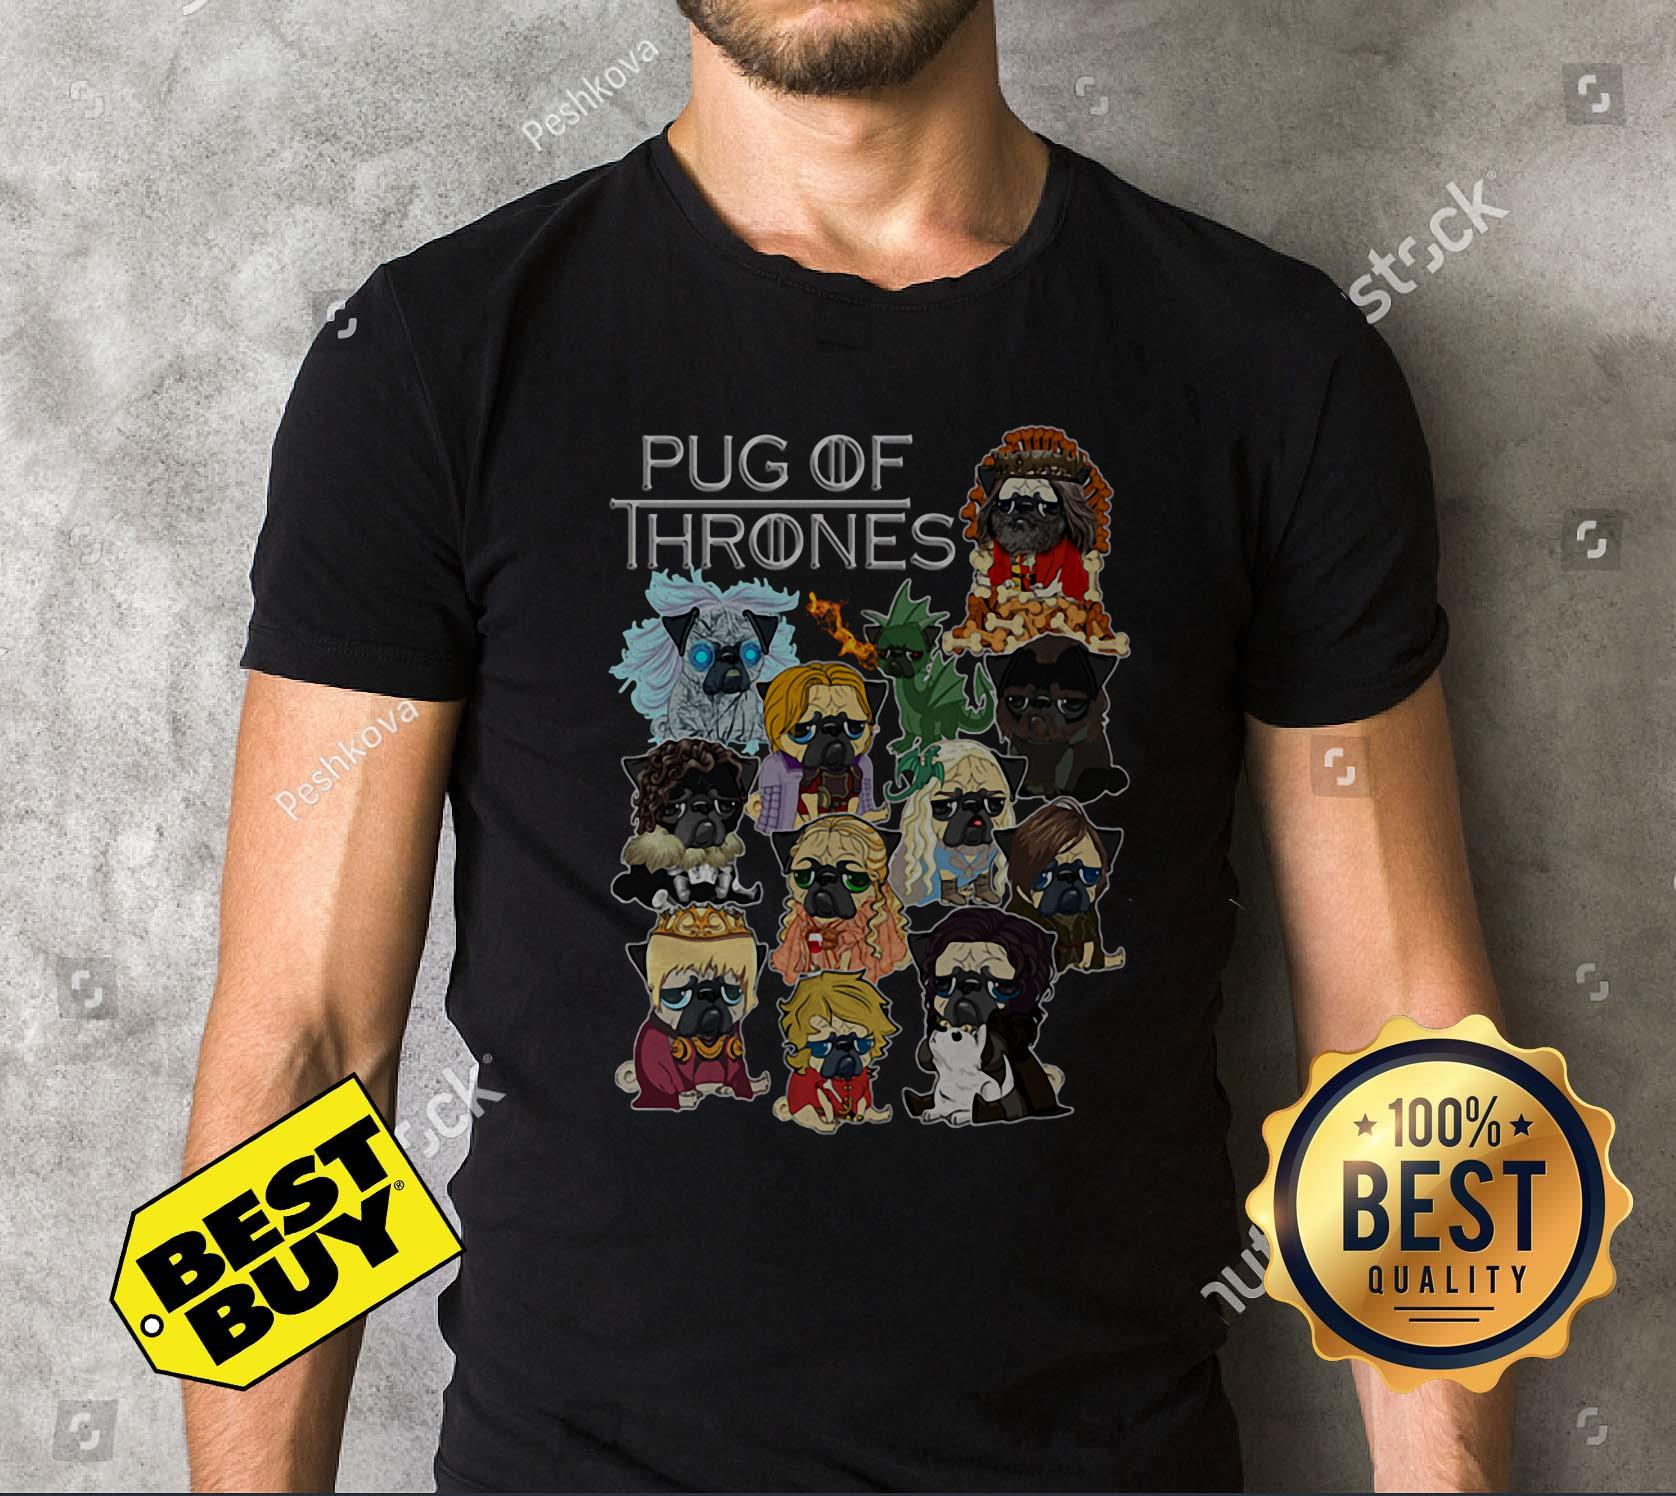 Pug Of Thrones Game Of Thrones tank top